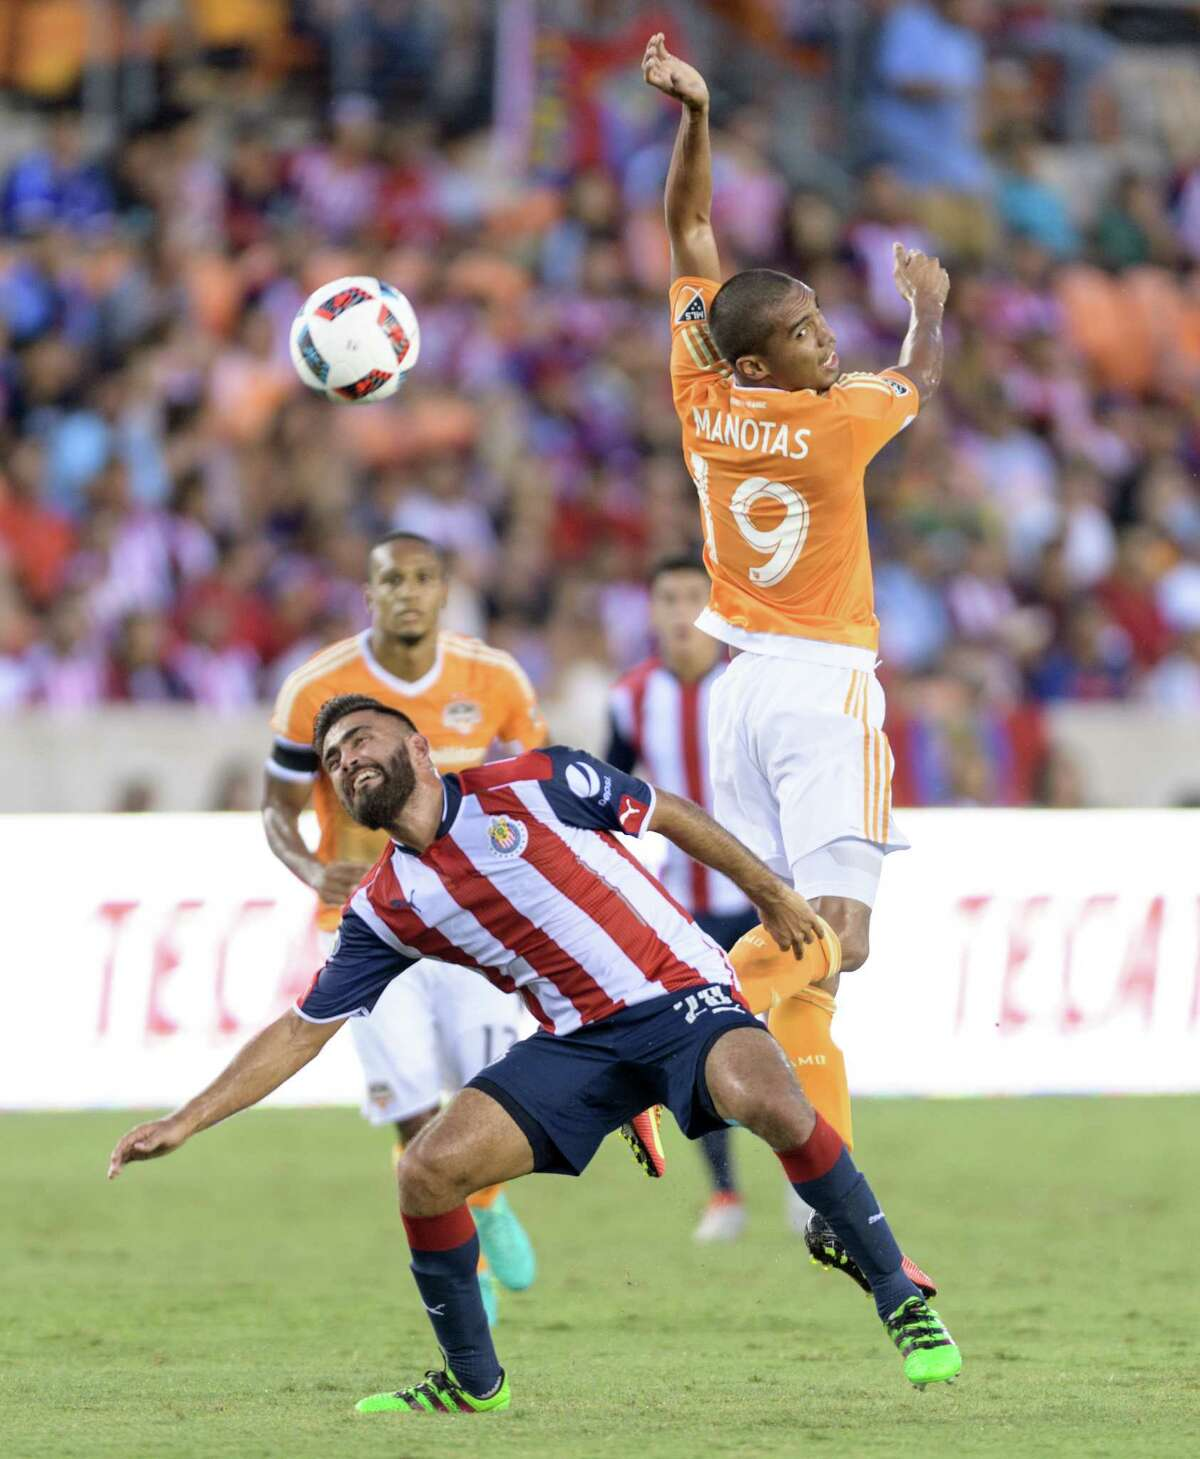 Mauro Manotas (19) of the Houston Dynamo heads the ball towards the goal in front of Miguel Basalt (28) of C. D. Guadalajara in a friendly soccer match on Sunday, September 4, 2016 at BBVA Compass Stadium in Houston Texas.